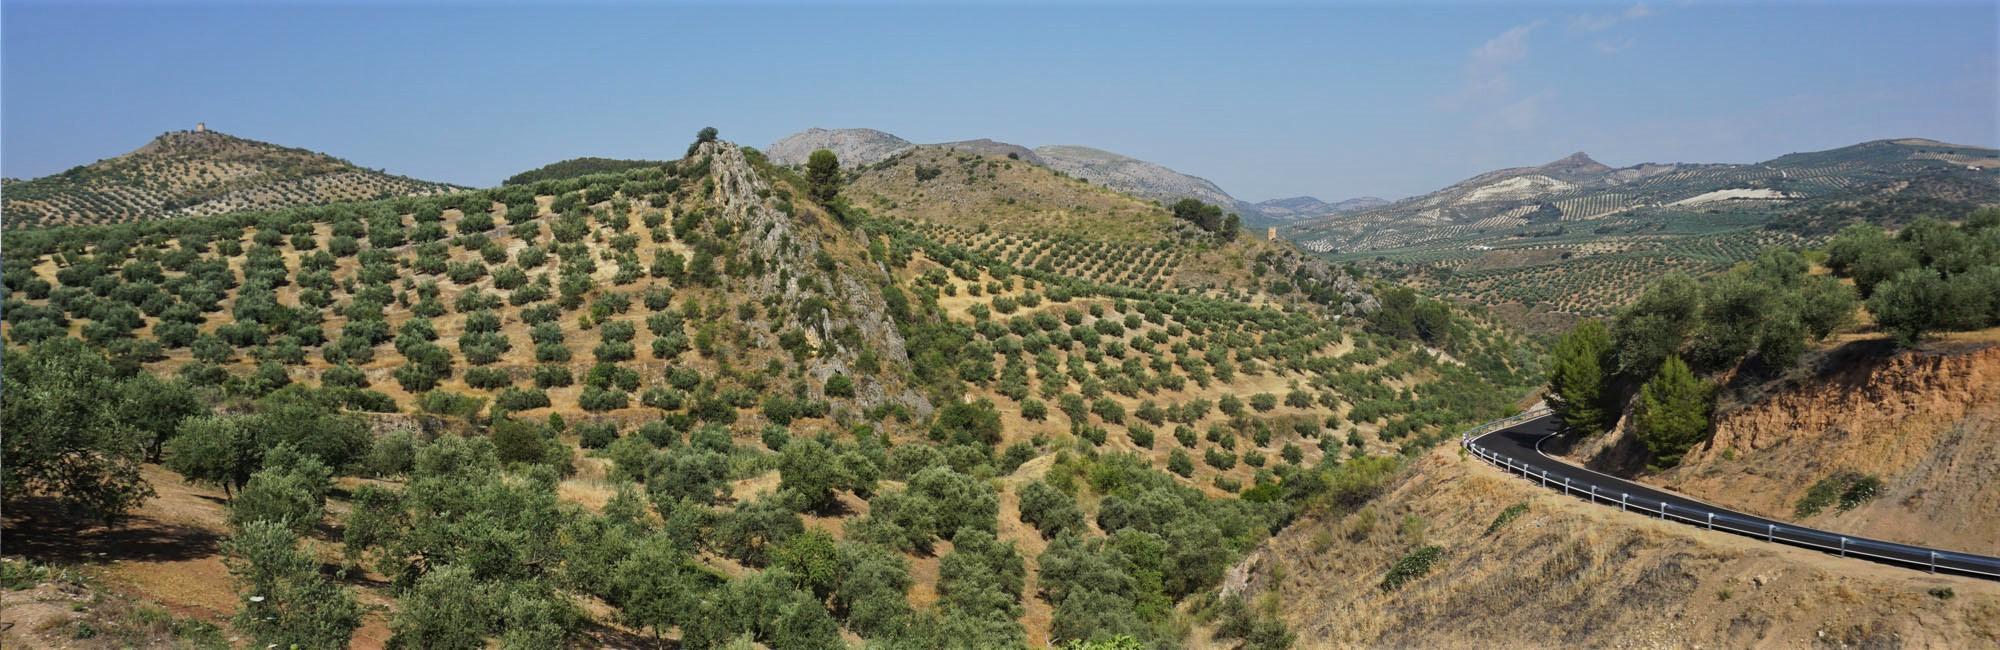 Olive groves in andalucia